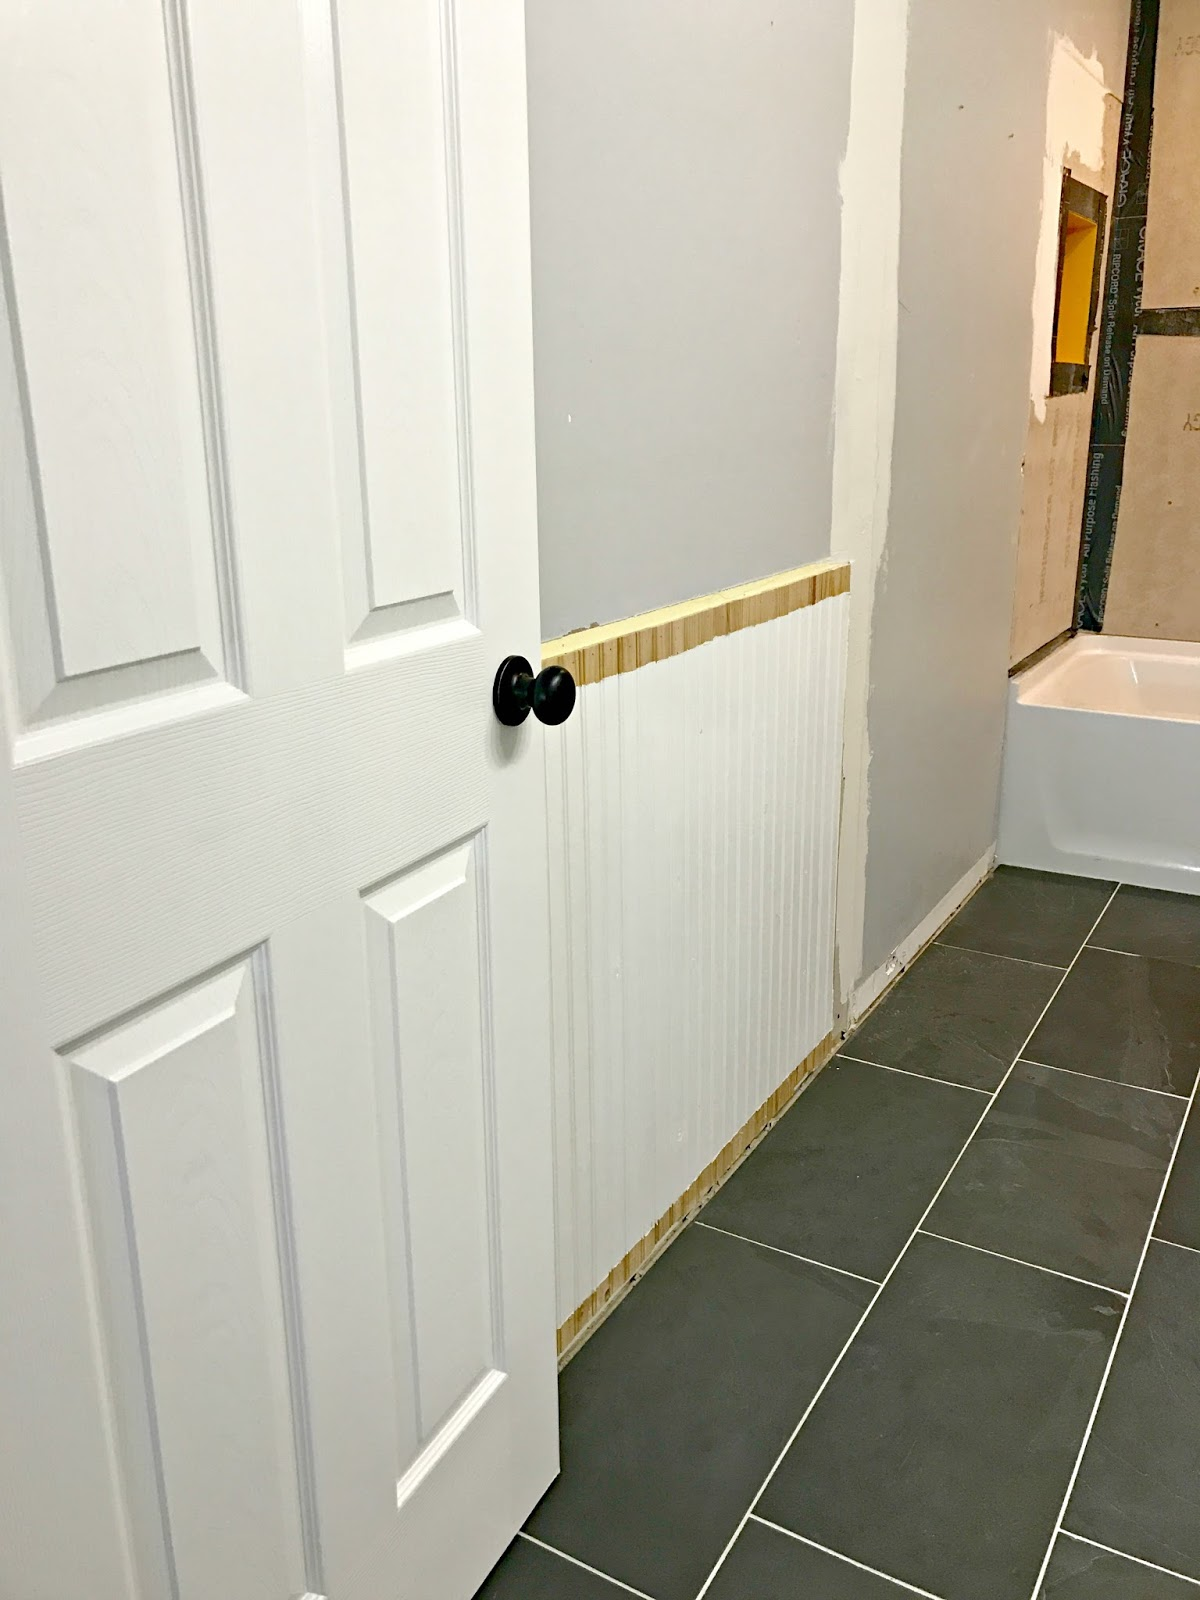 Bathroom next steps -- which wainscoting look? from Thrifty Decor Chick